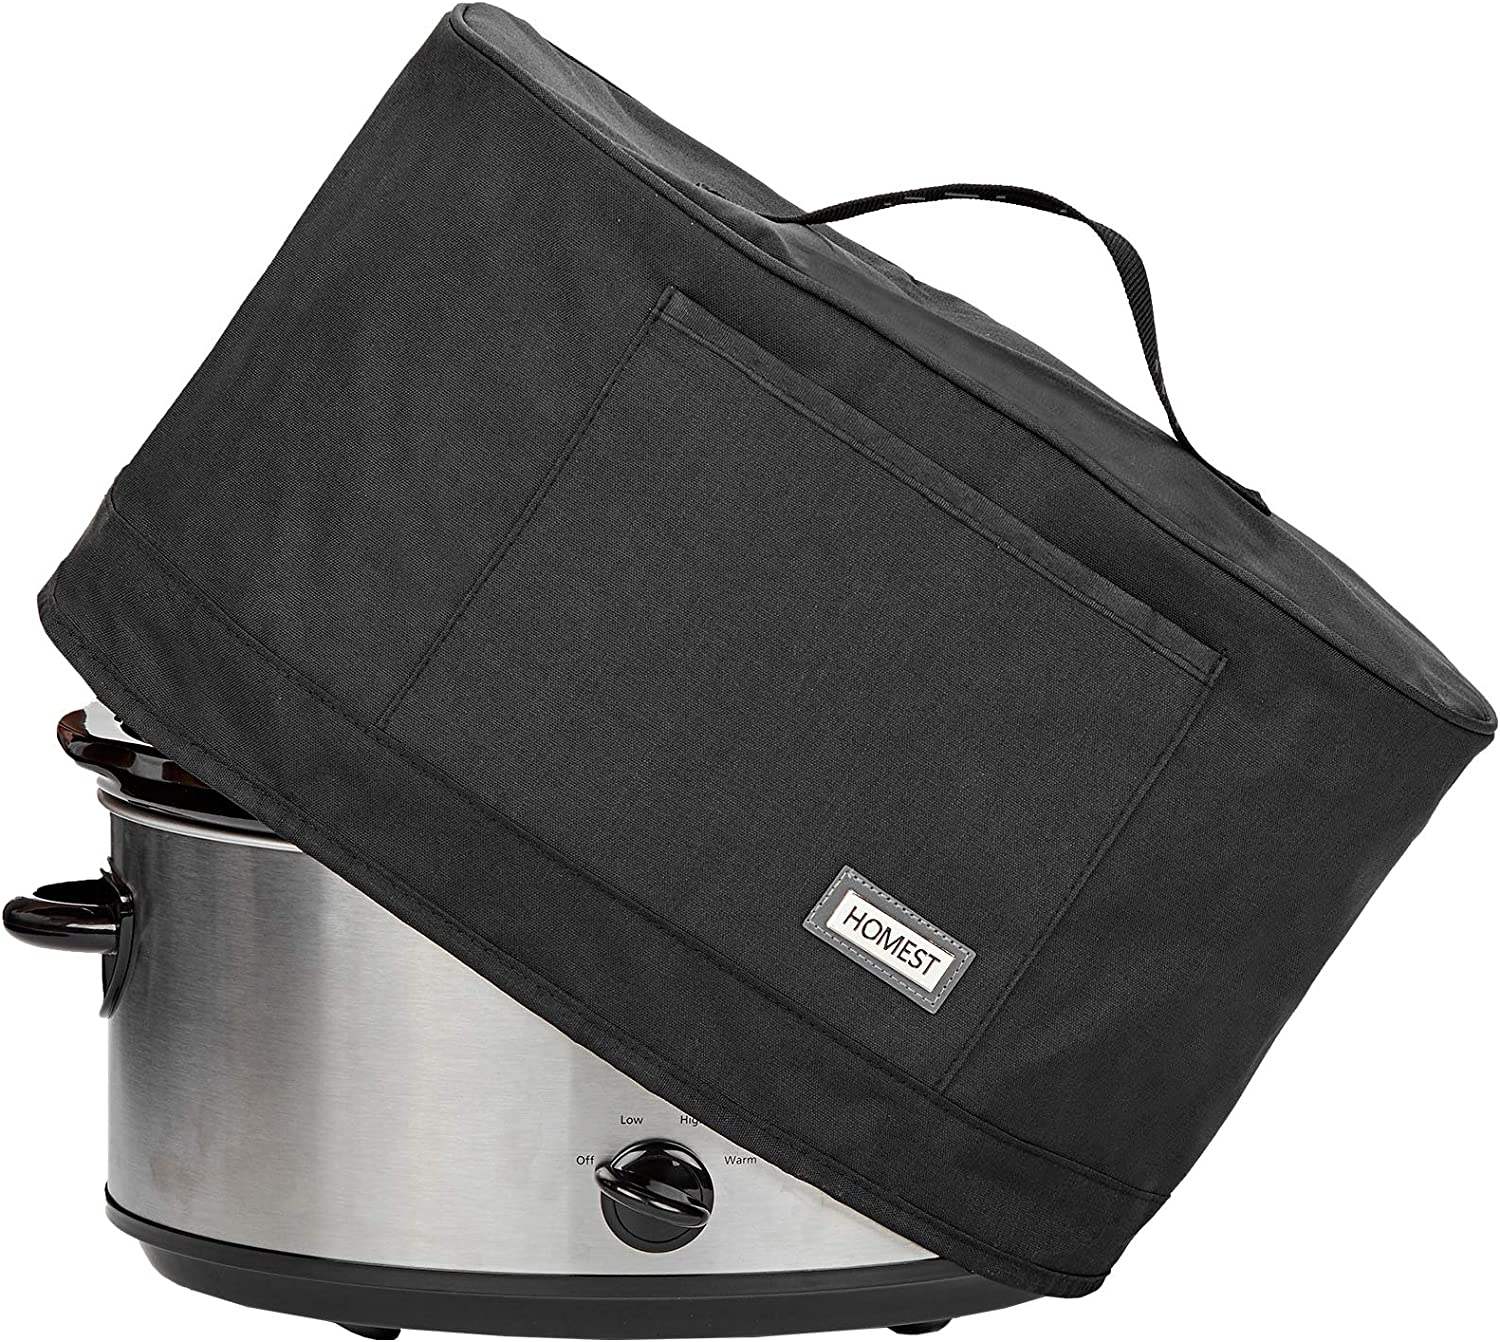 HOMEST Slow Cooker Anti Oil Dust Cover Compatible with Crock Pot 6, 7, 8 Quart, These Cover Have Front Pocket for Recipe and Spoon, Grey